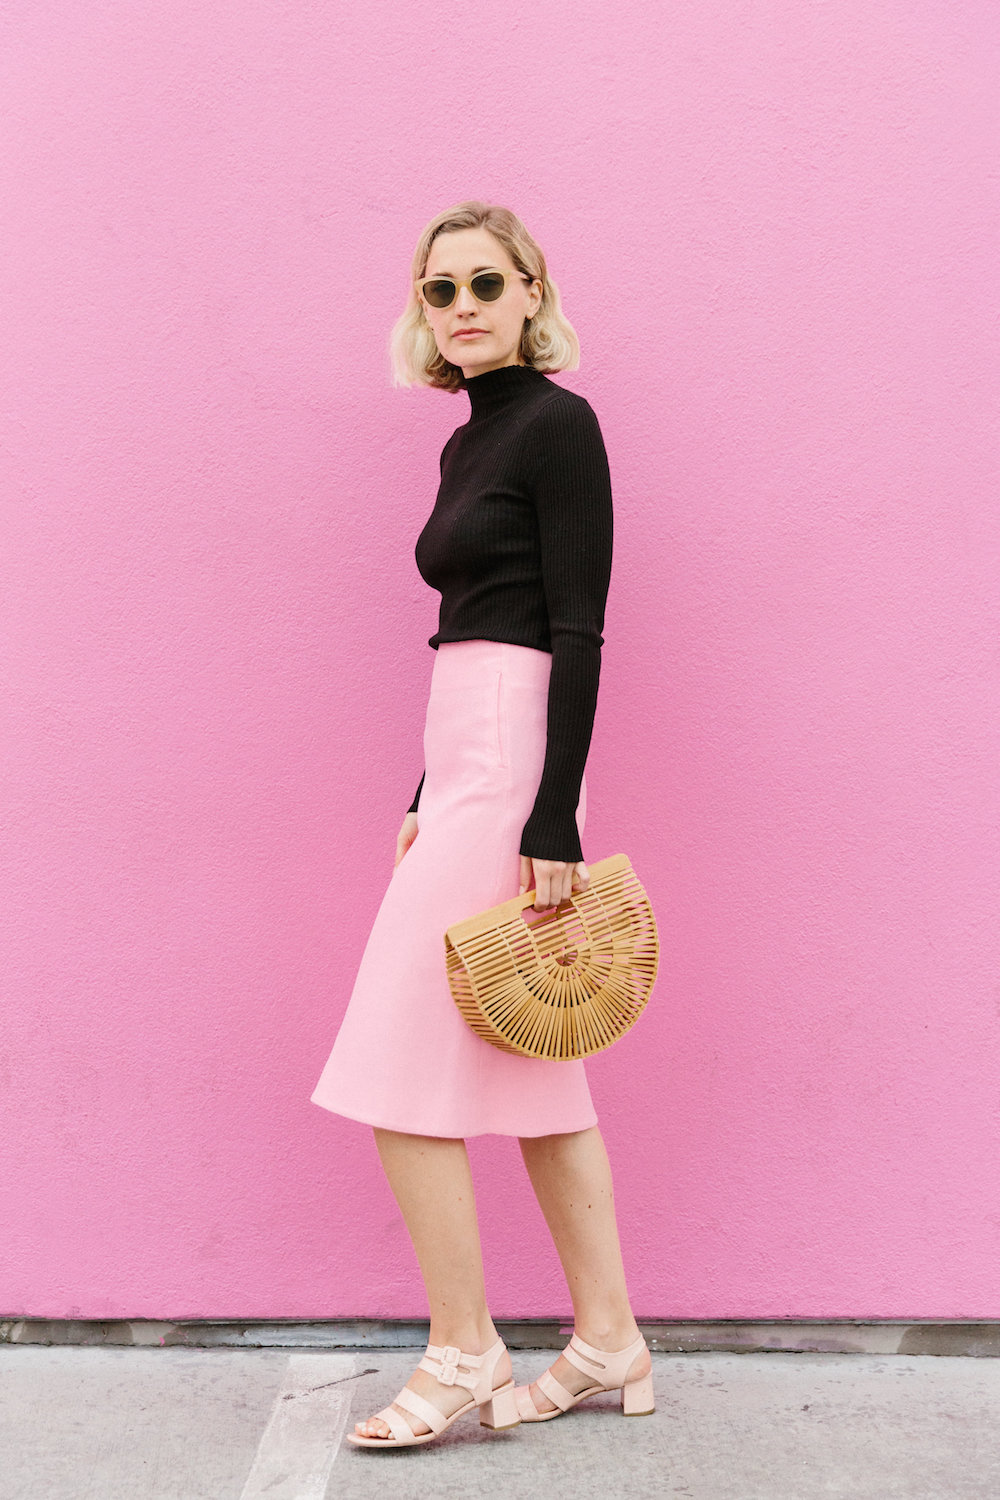 A model against a pink wall wearing a pink midi skirt